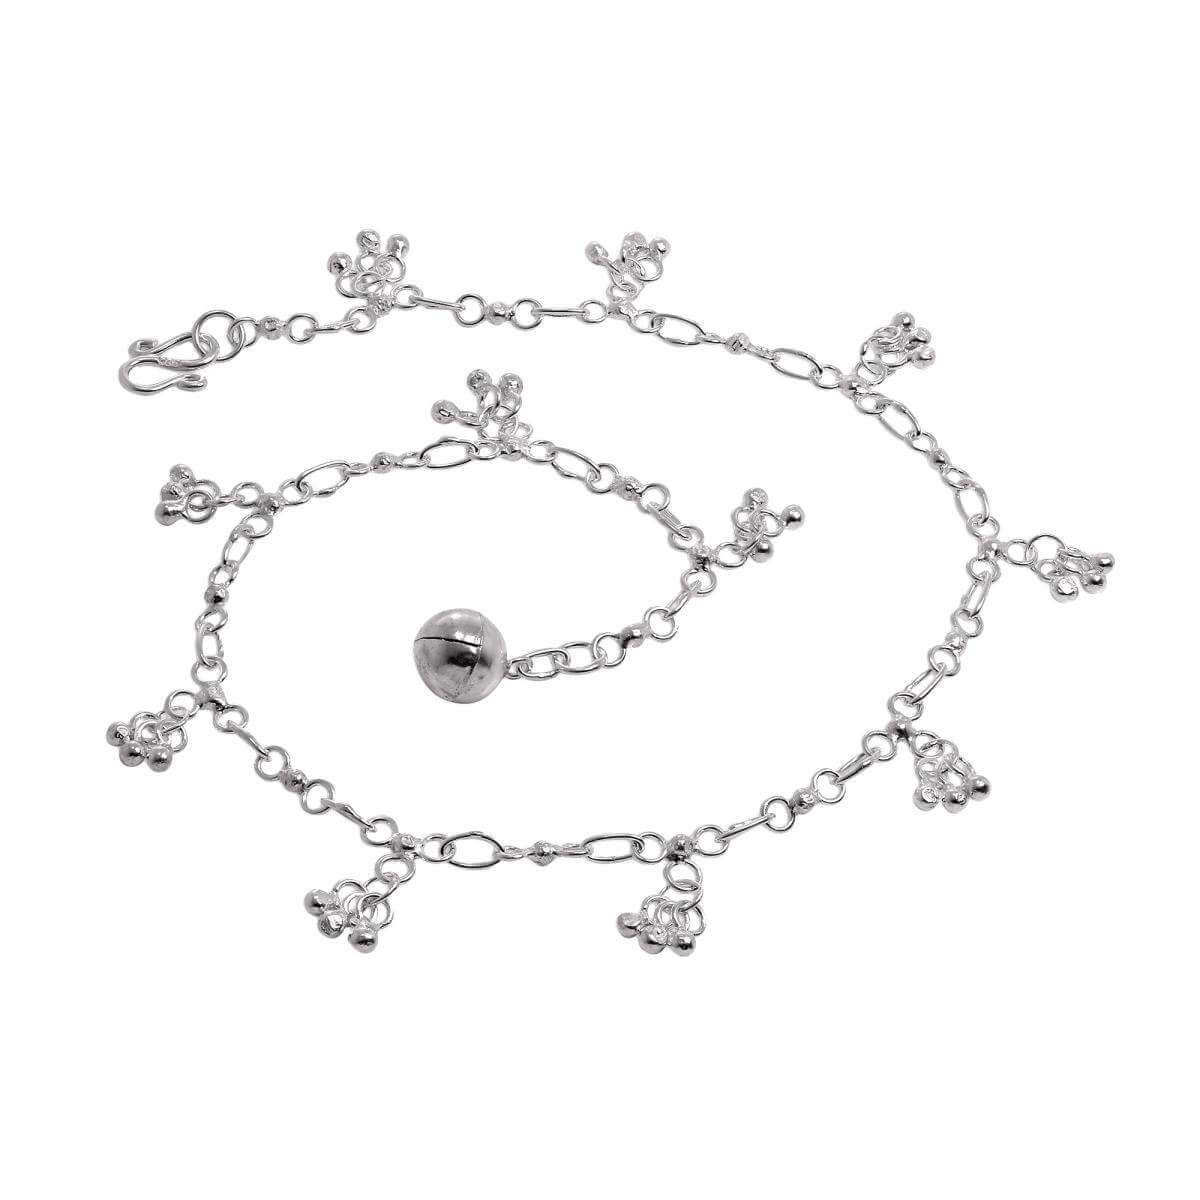 Sterling Silver Anklet with Chandelier Charms